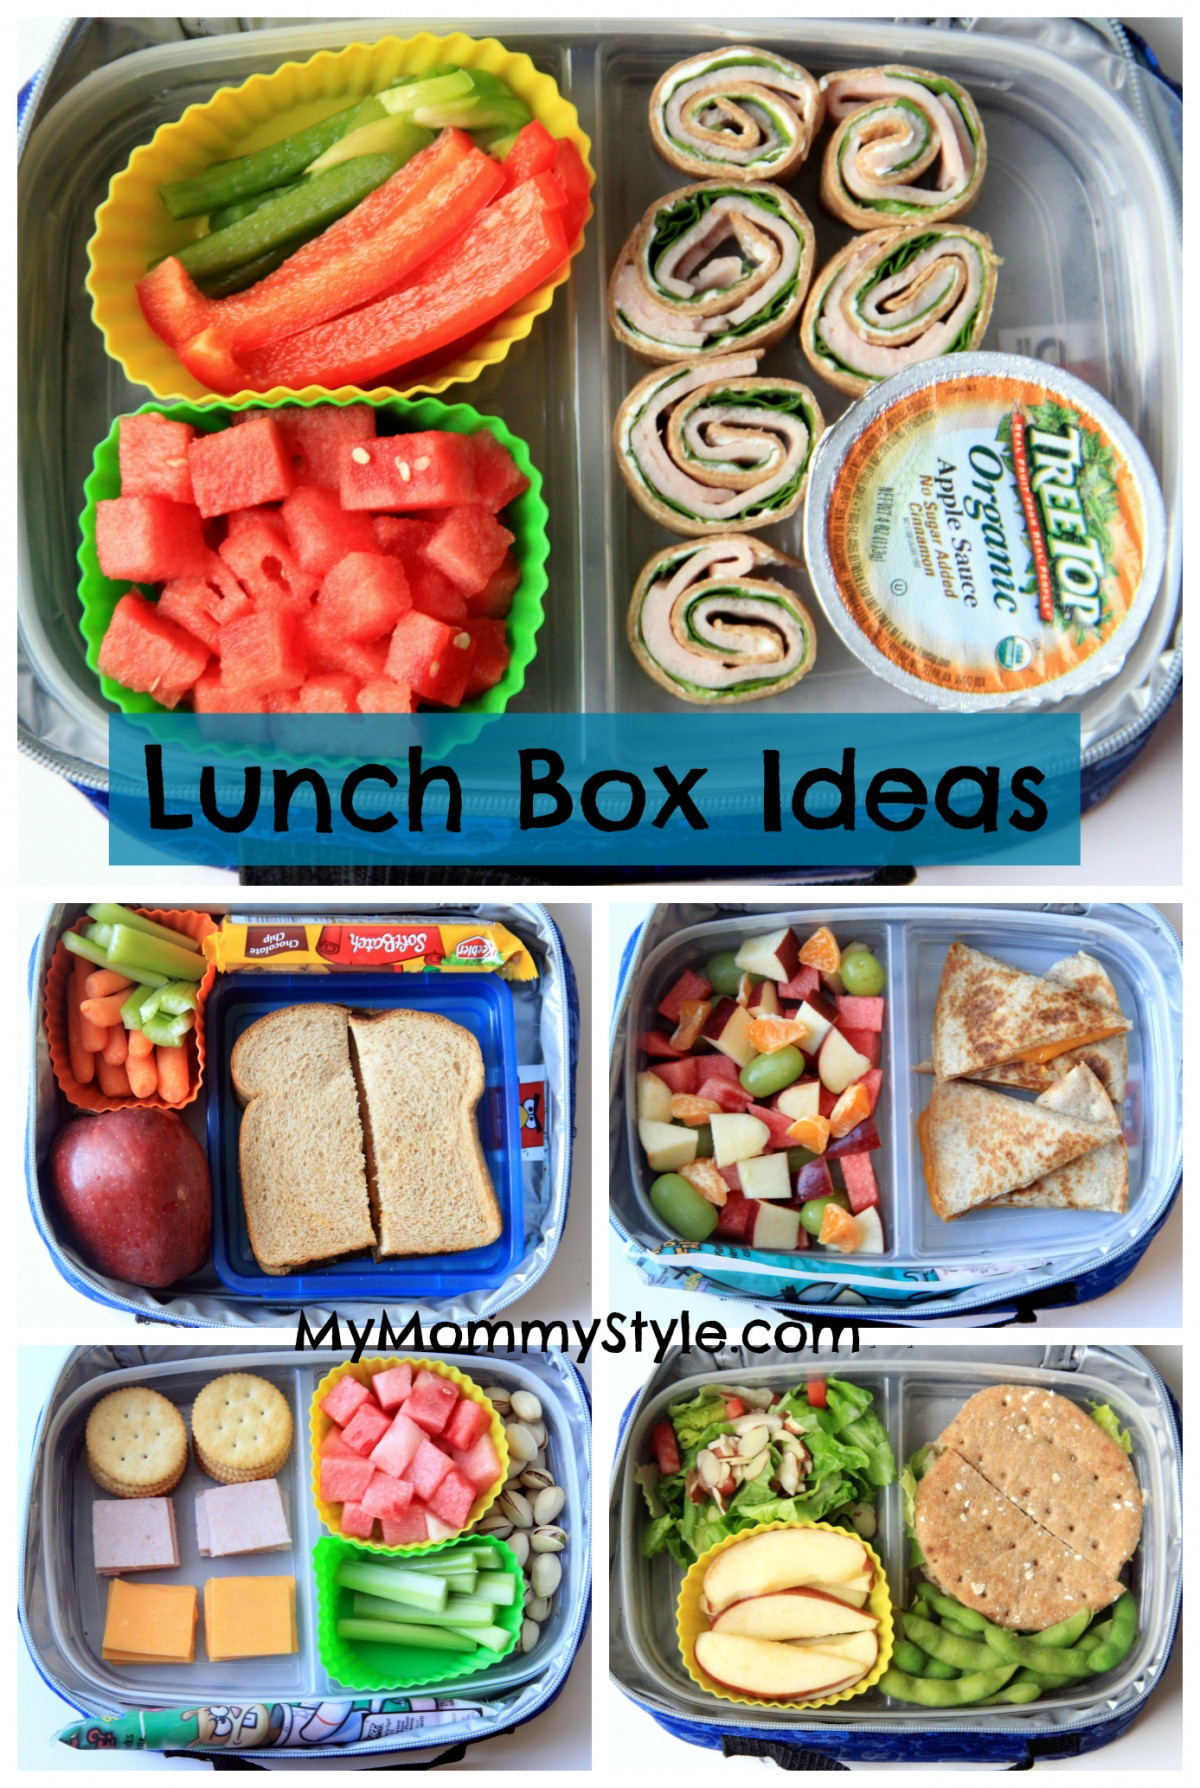 Ideas For Healthy Lunches  Healthy Lunch Box ideas week 2 My Mommy Style